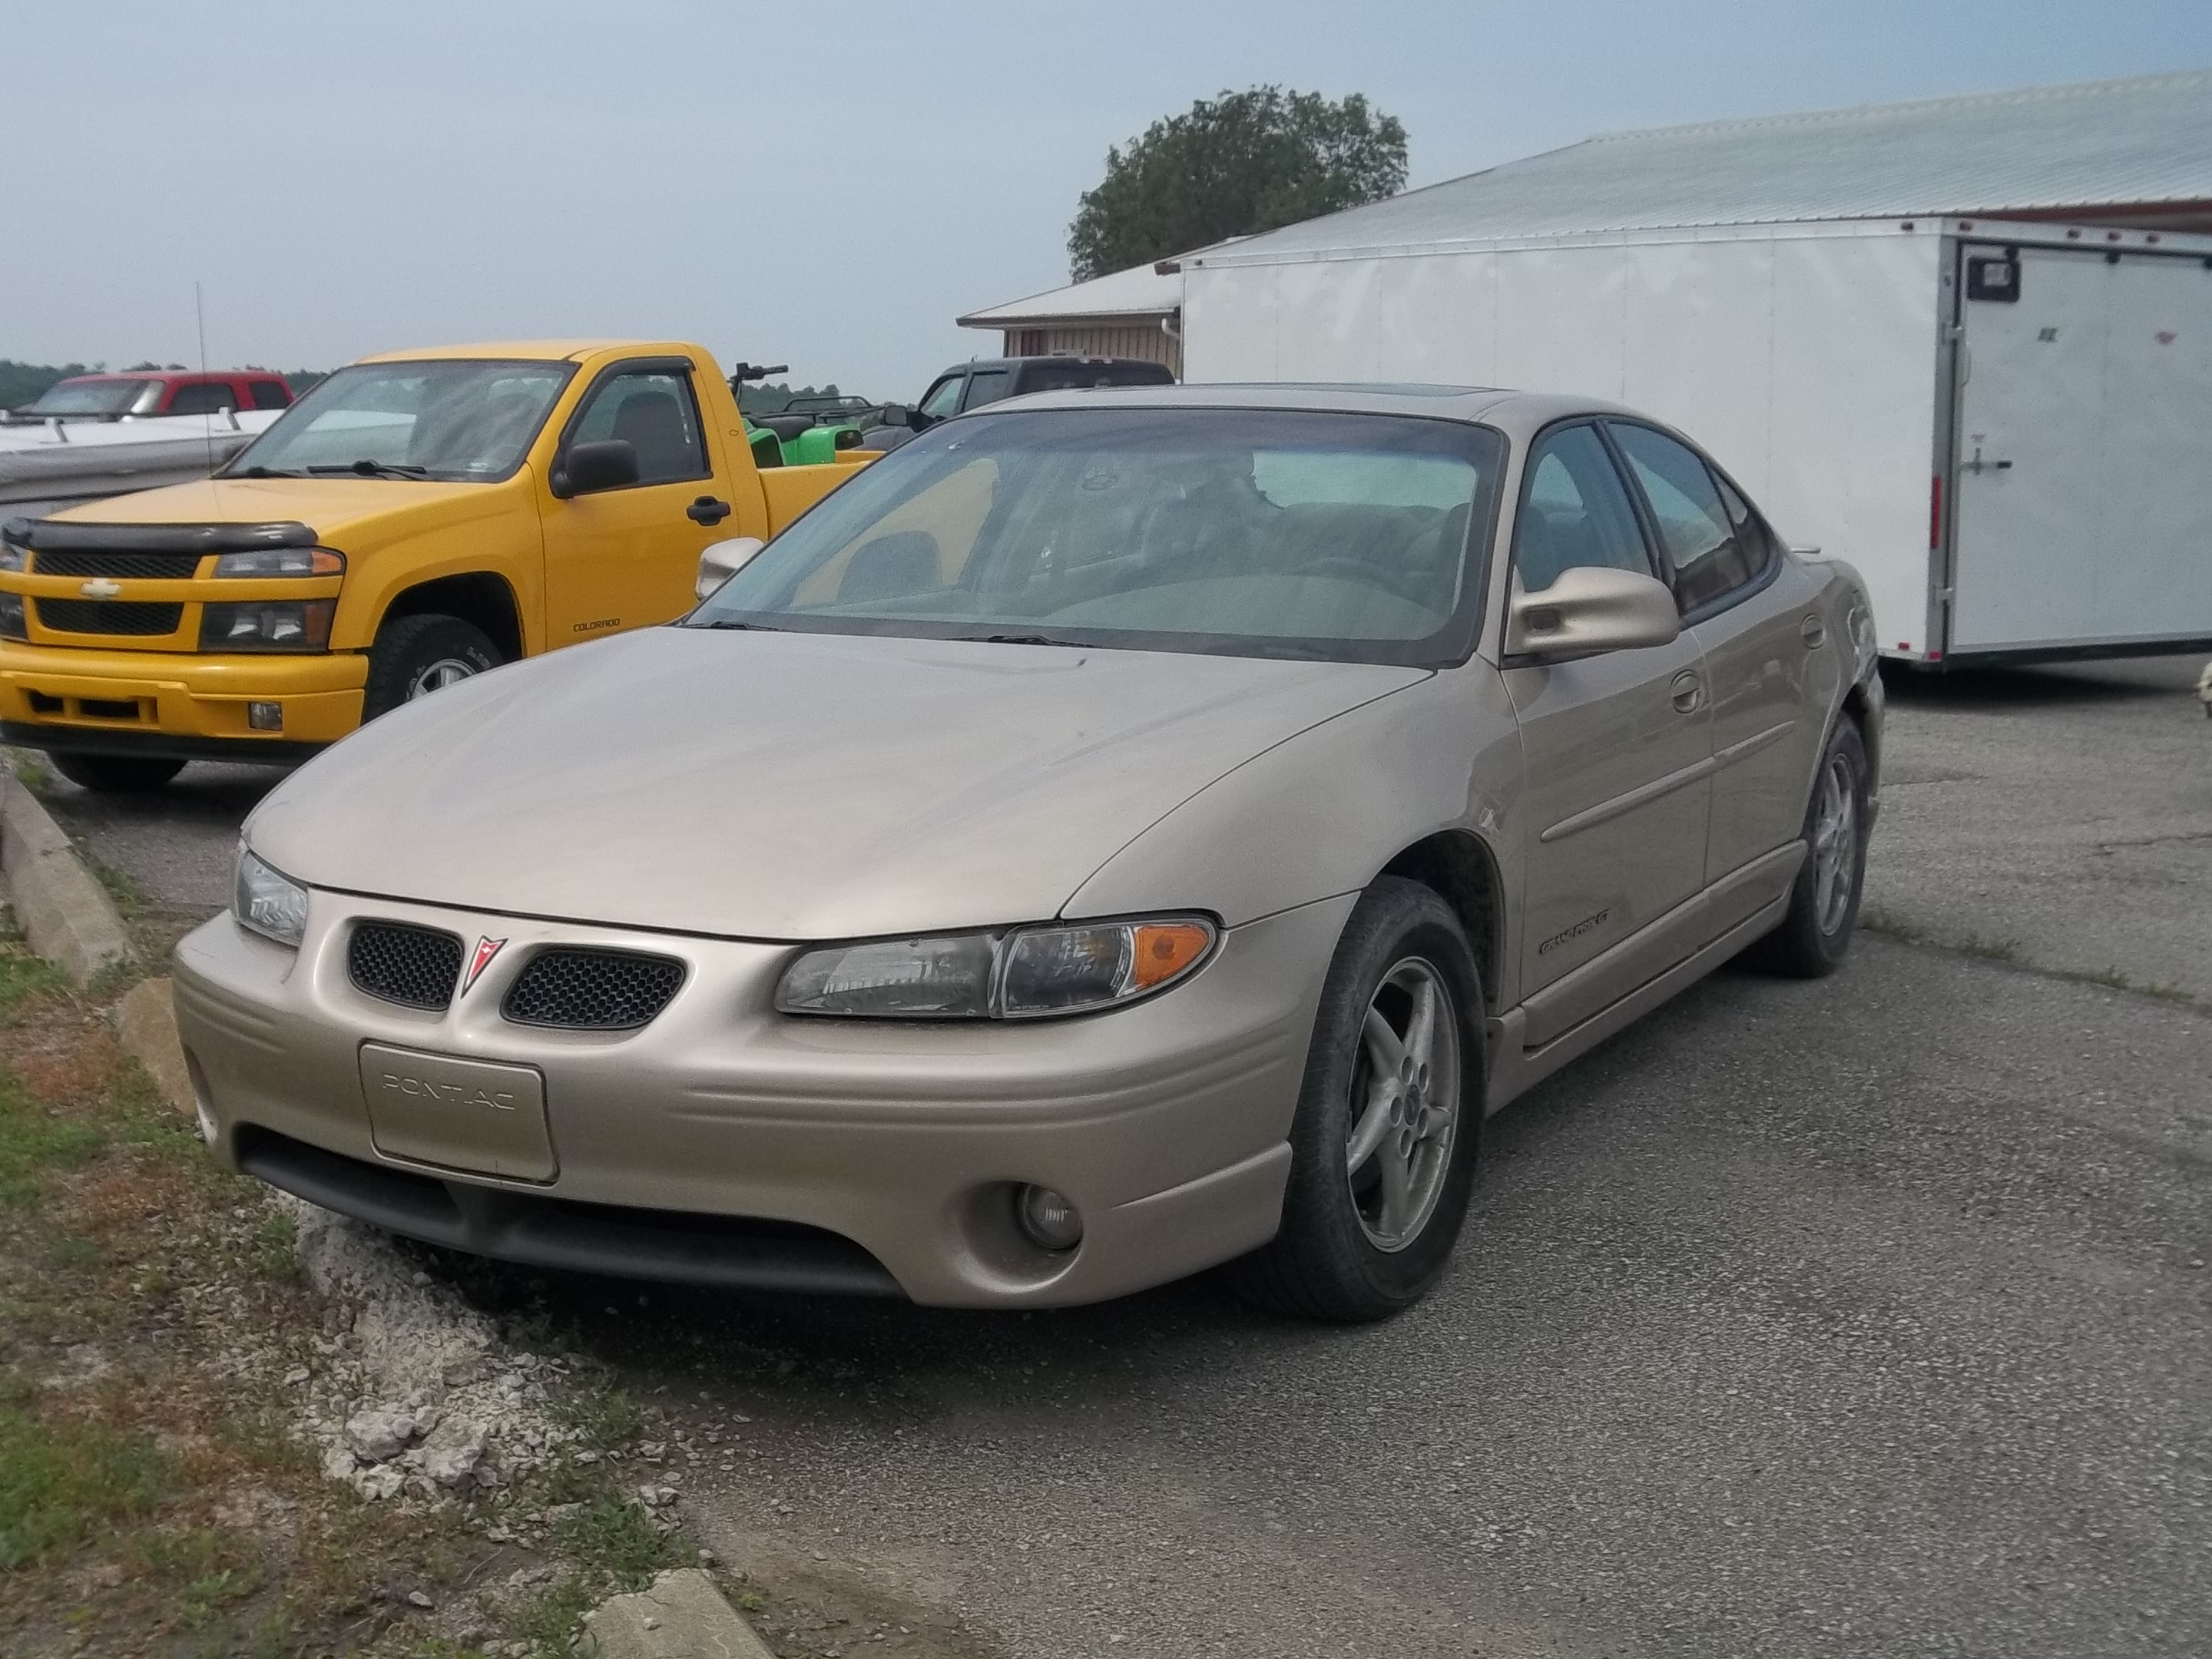 Gm Pontiac Grand Prix Common Problems Repair Guides